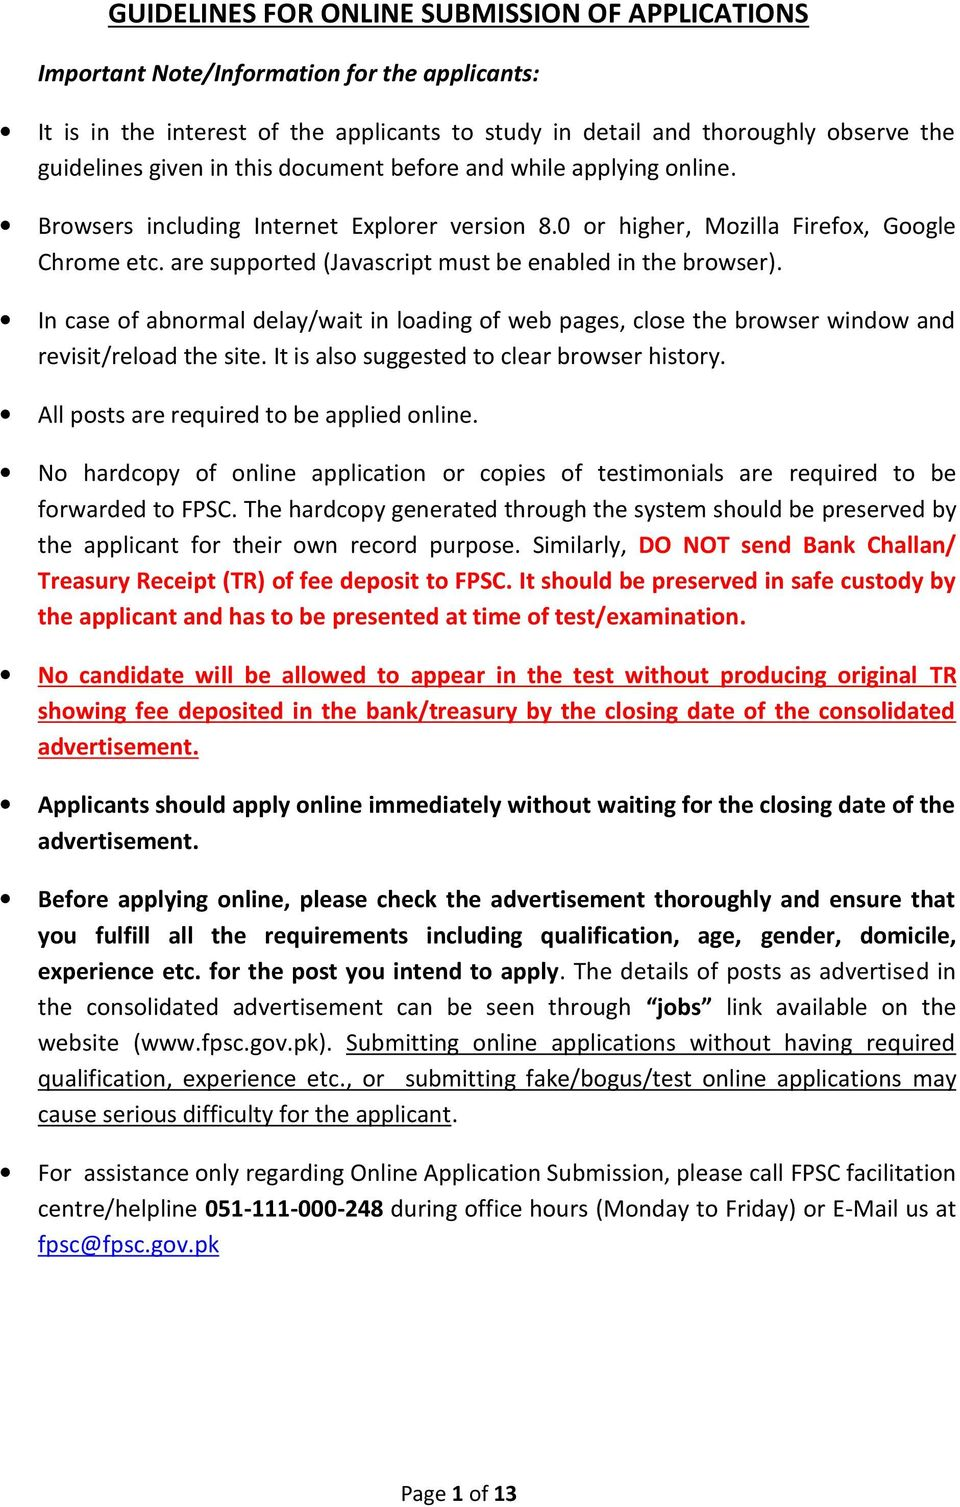 GUIDELINES FOR ONLINE SUBMISSION OF APPLICATIONS - PDF